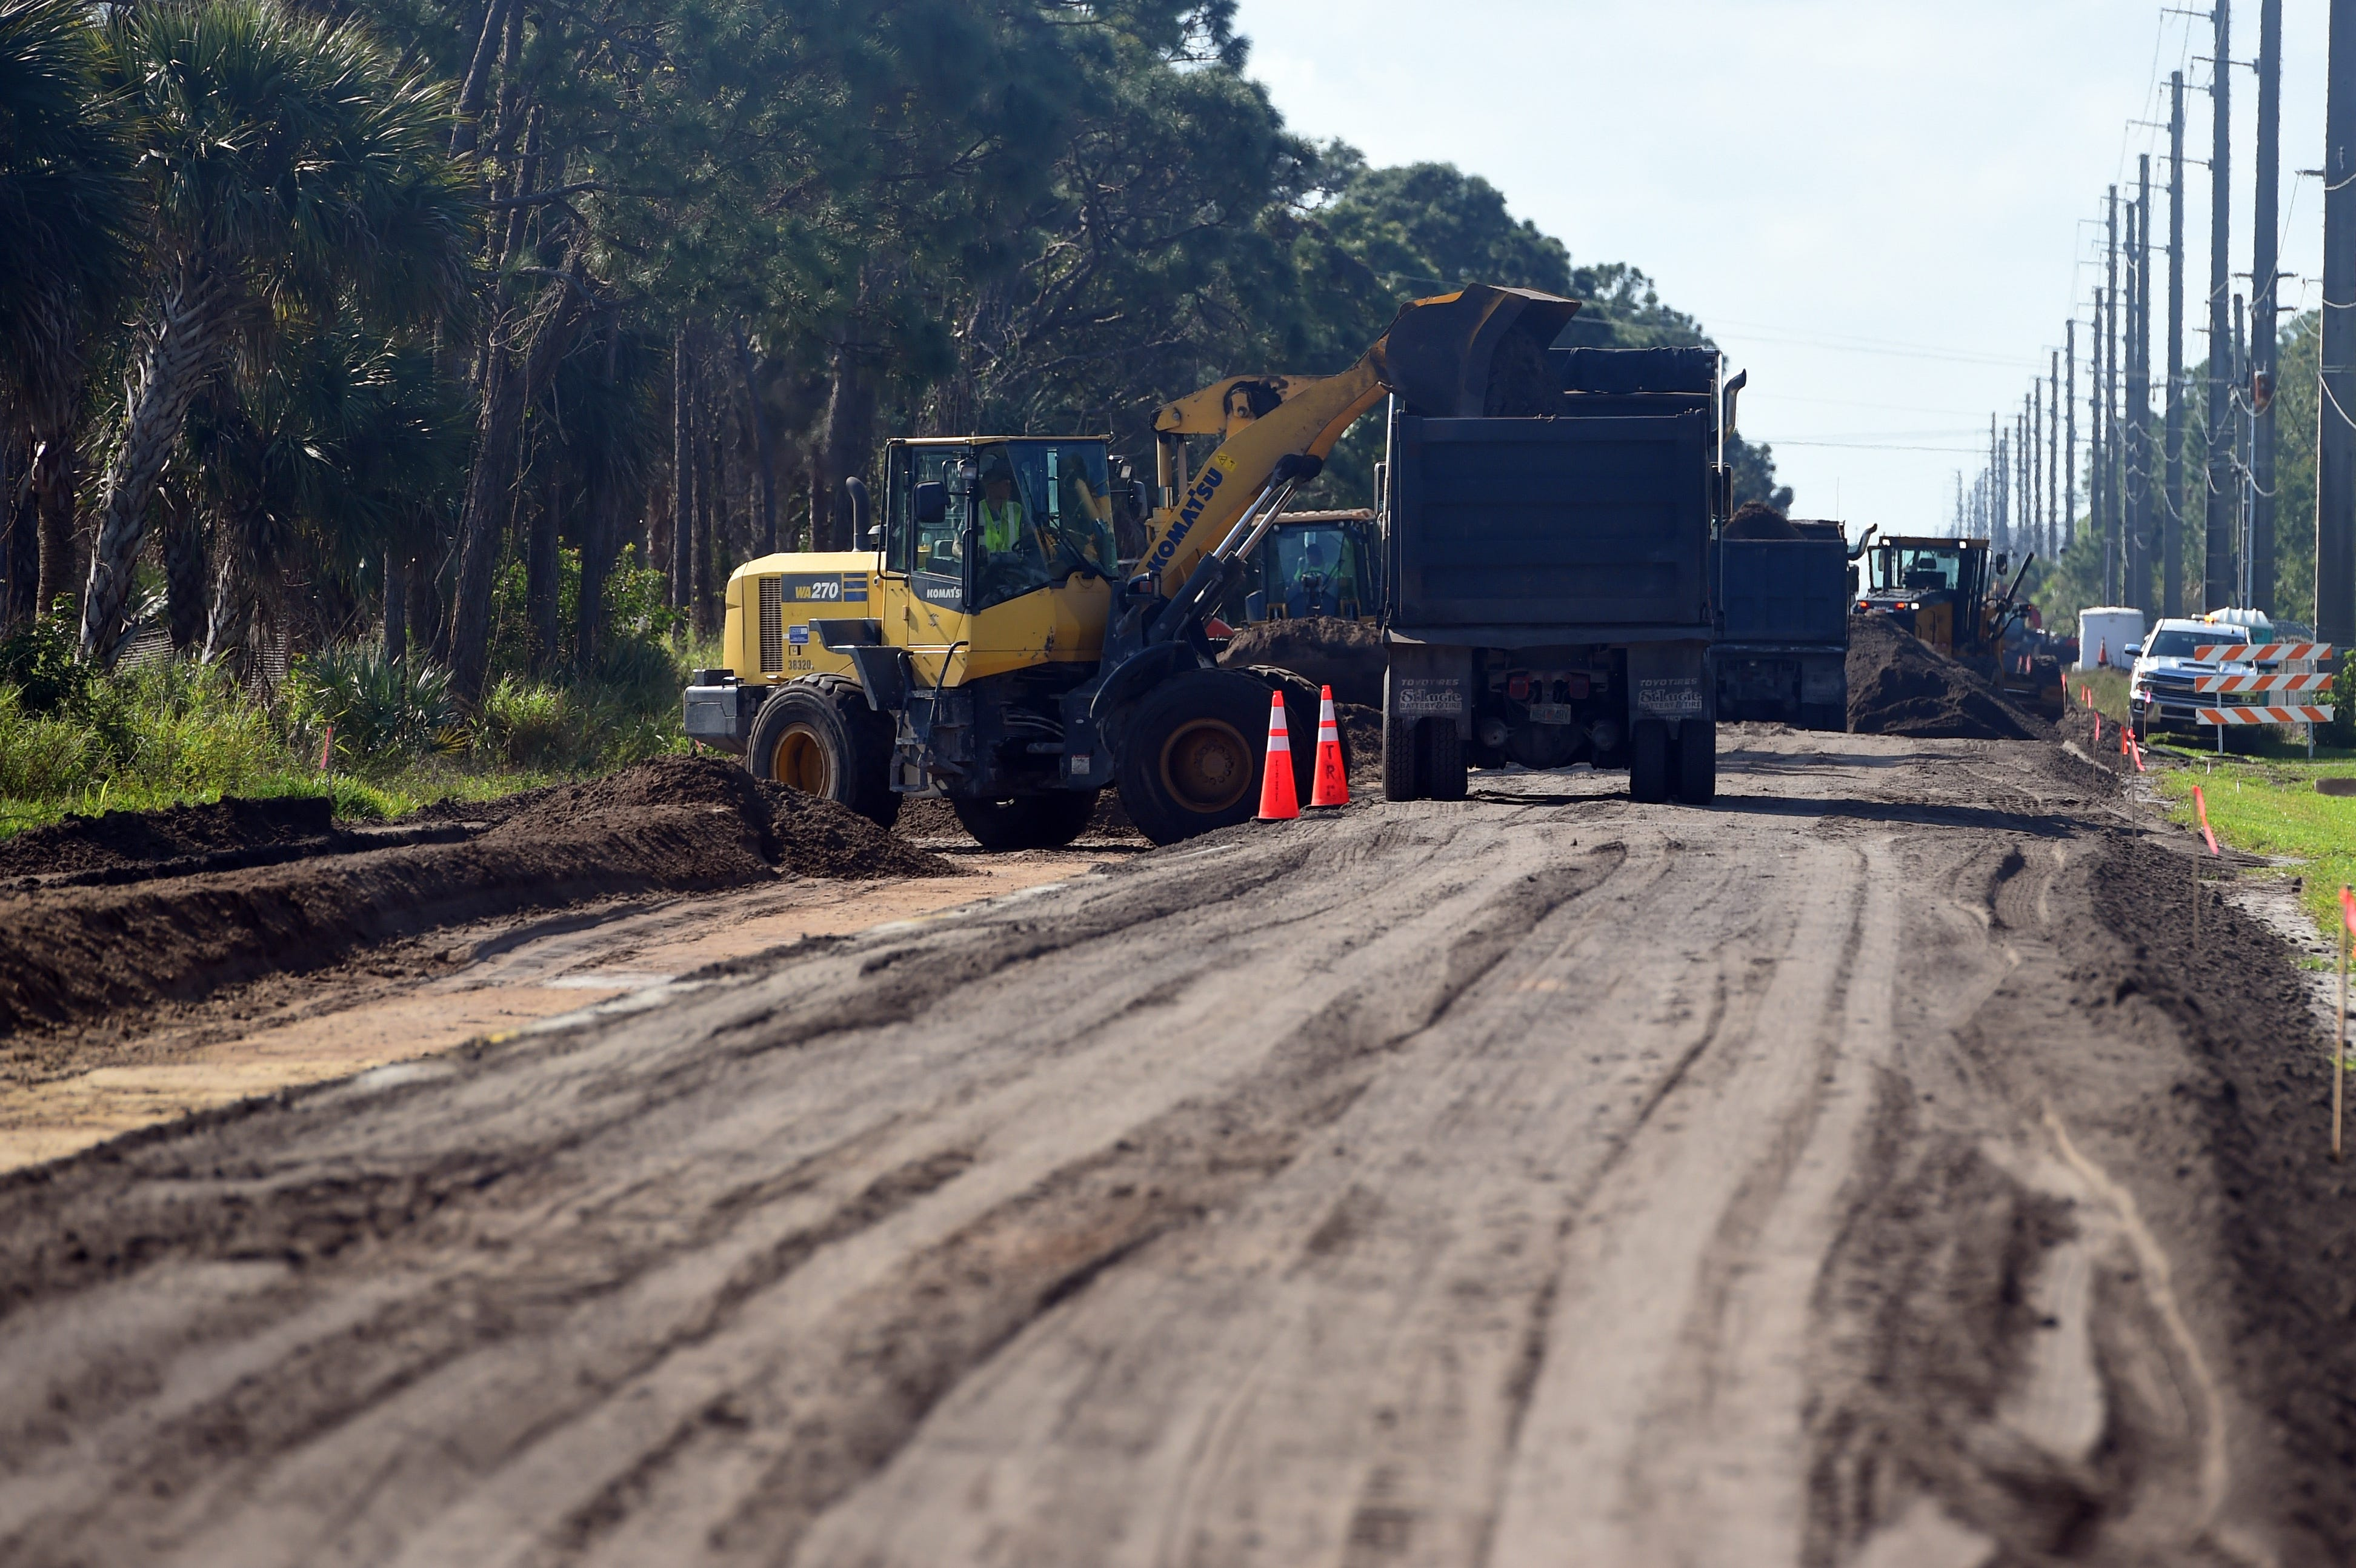 tcpalm.com - Colleen Wixon, Treasure Coast - Tired of 58th Avenue detours? Indian River County says construction is almost done